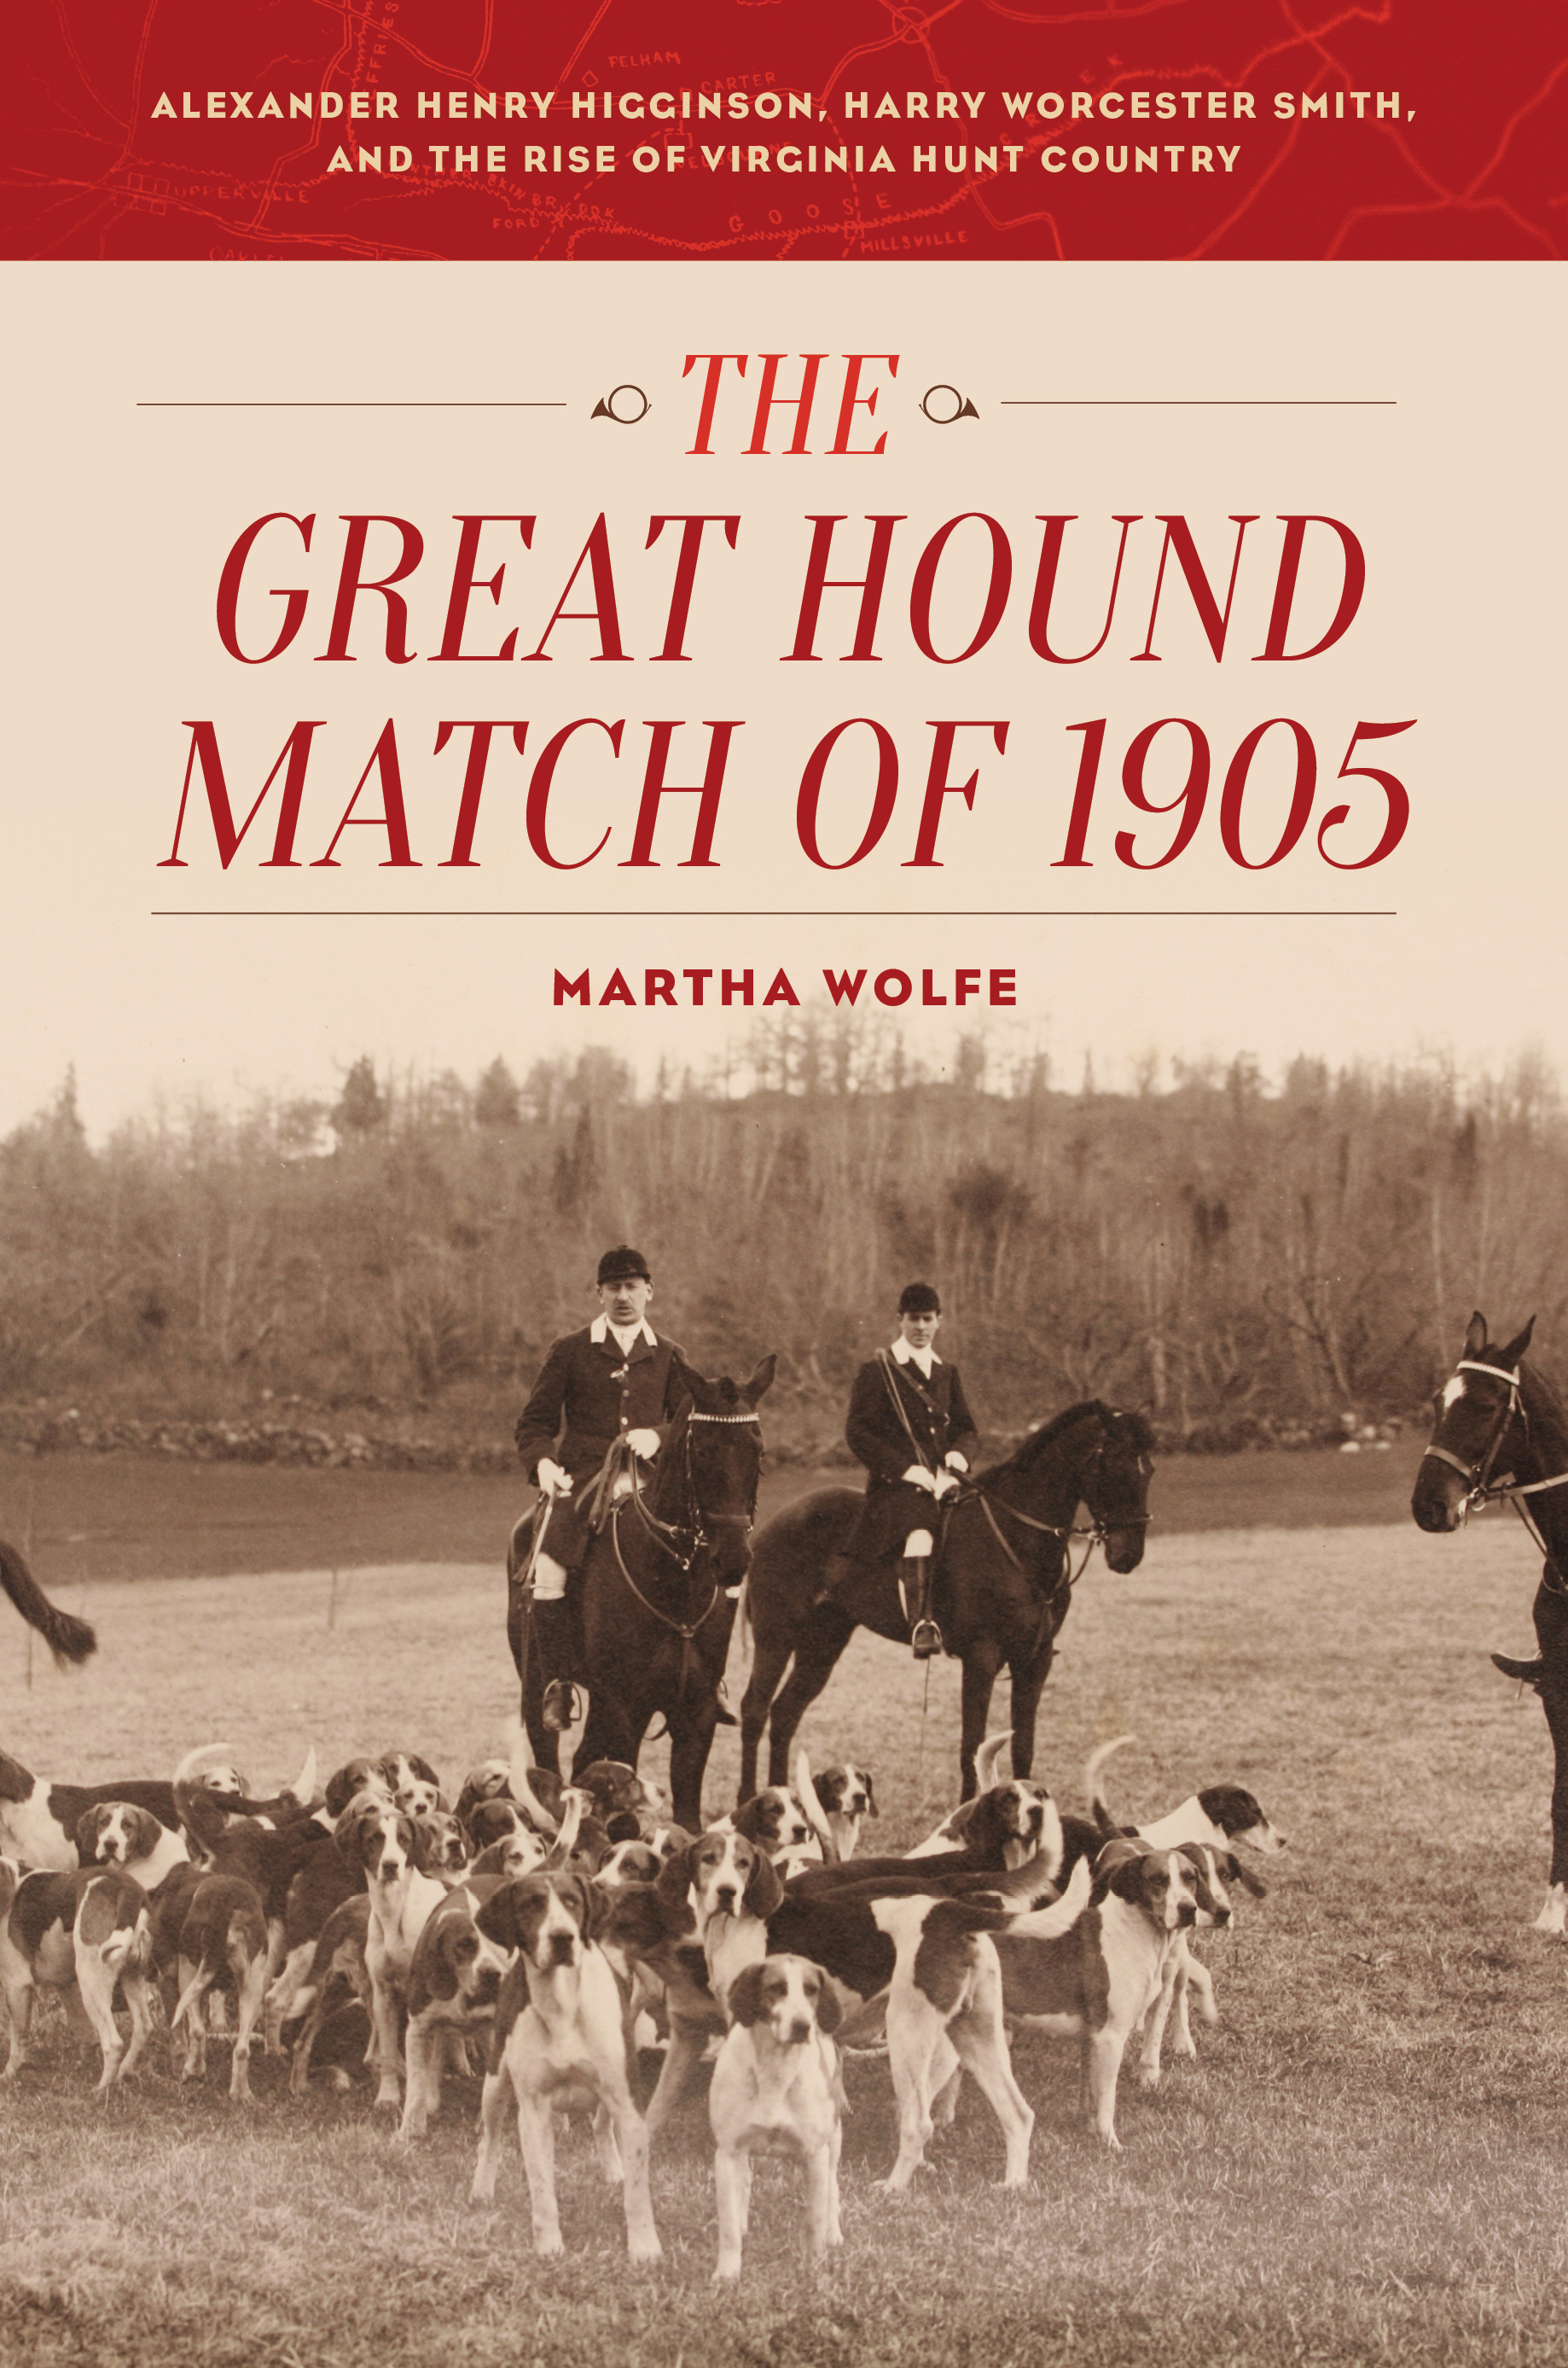 The Great Hound Match of 1905 by Martha Wolfe